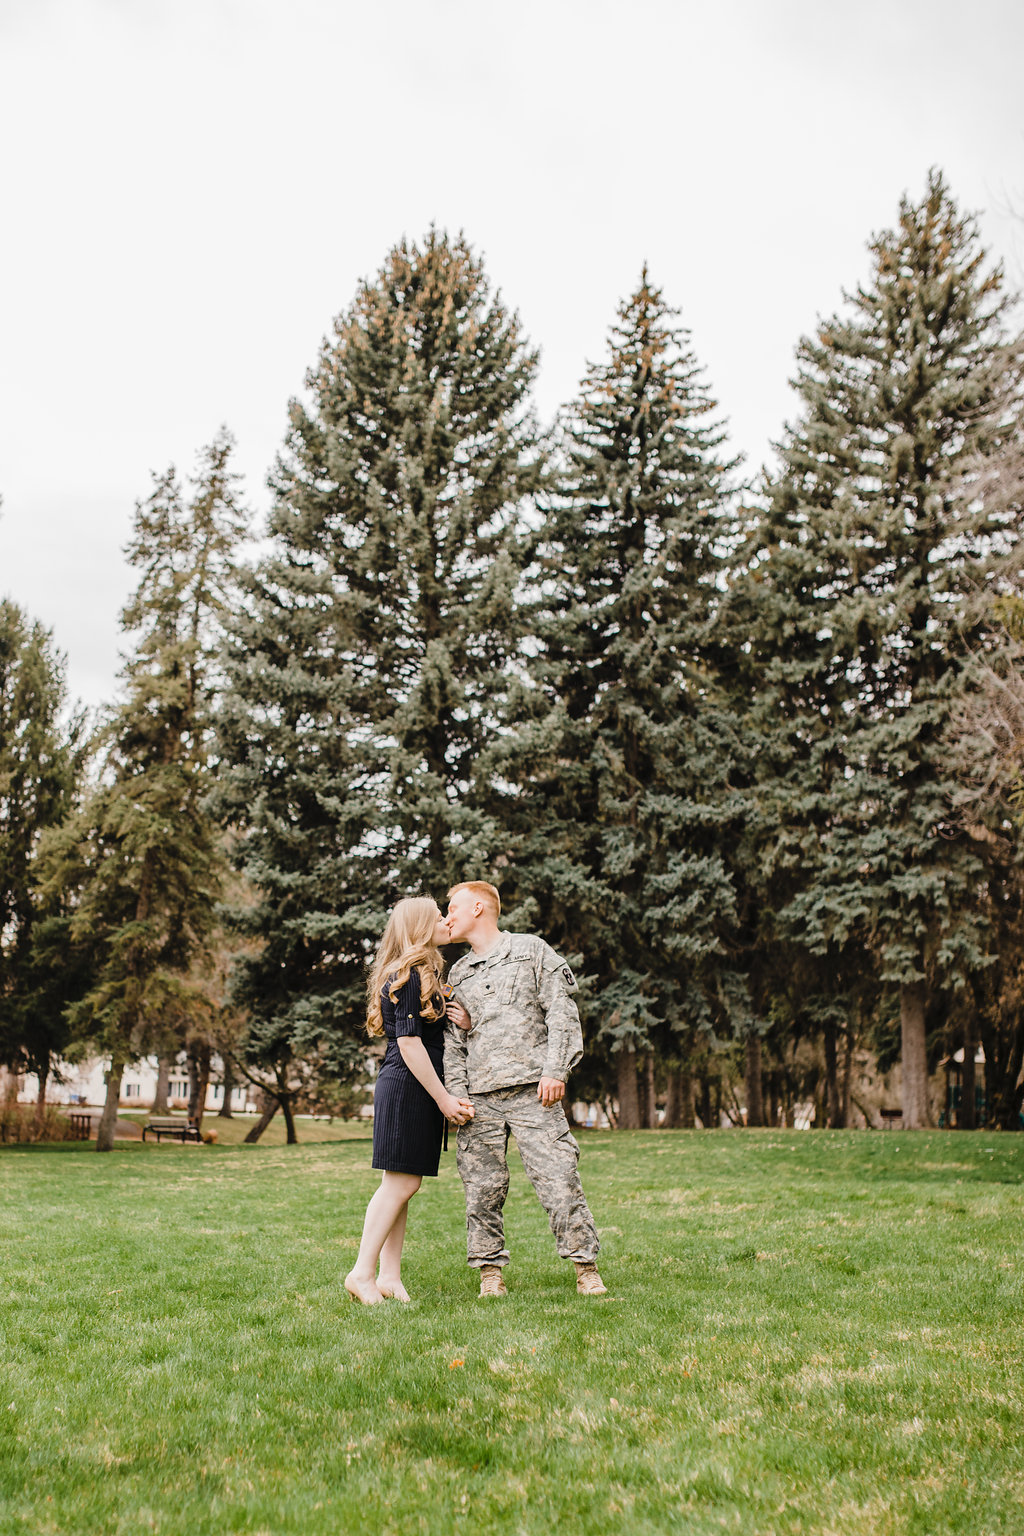 cache valley utah military engagement photography adventurous couples